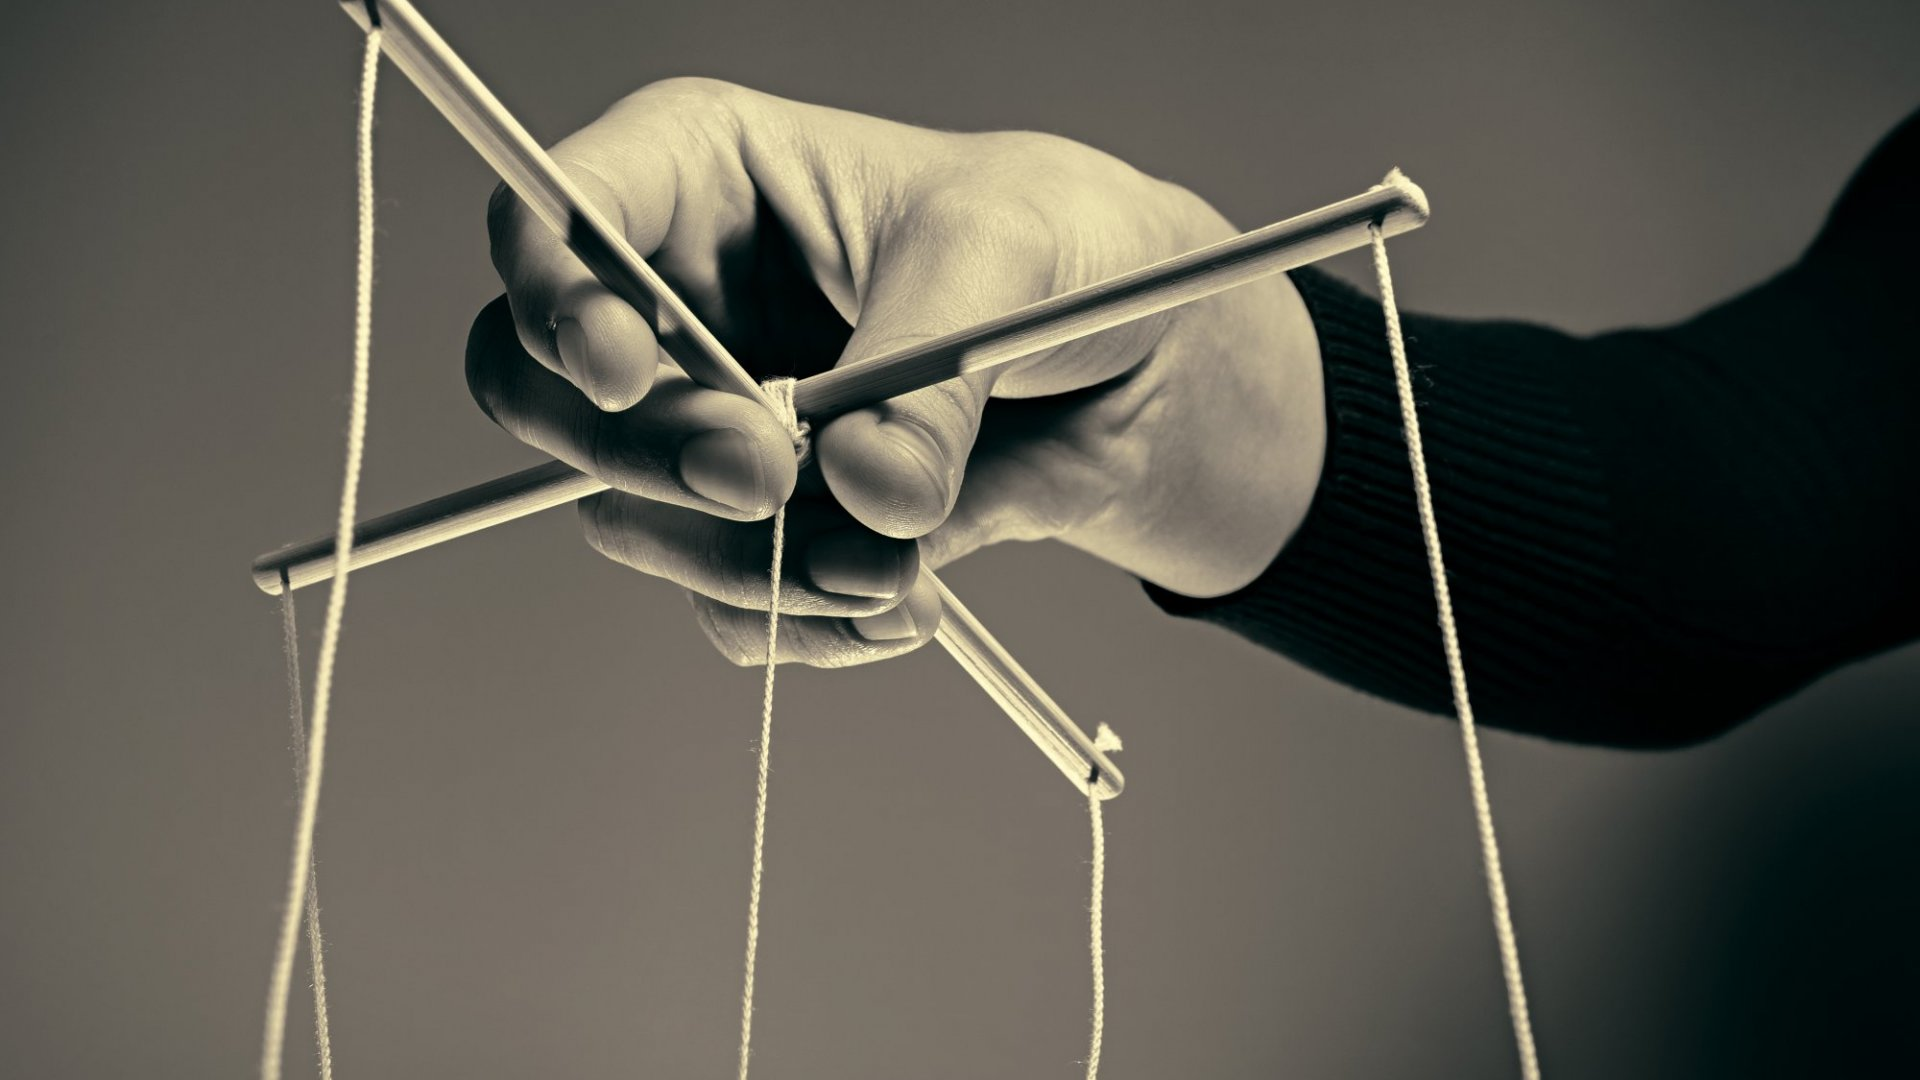 Are You Influencing People Or Manipulating Them? 3 Important Questions To Check Yourself.